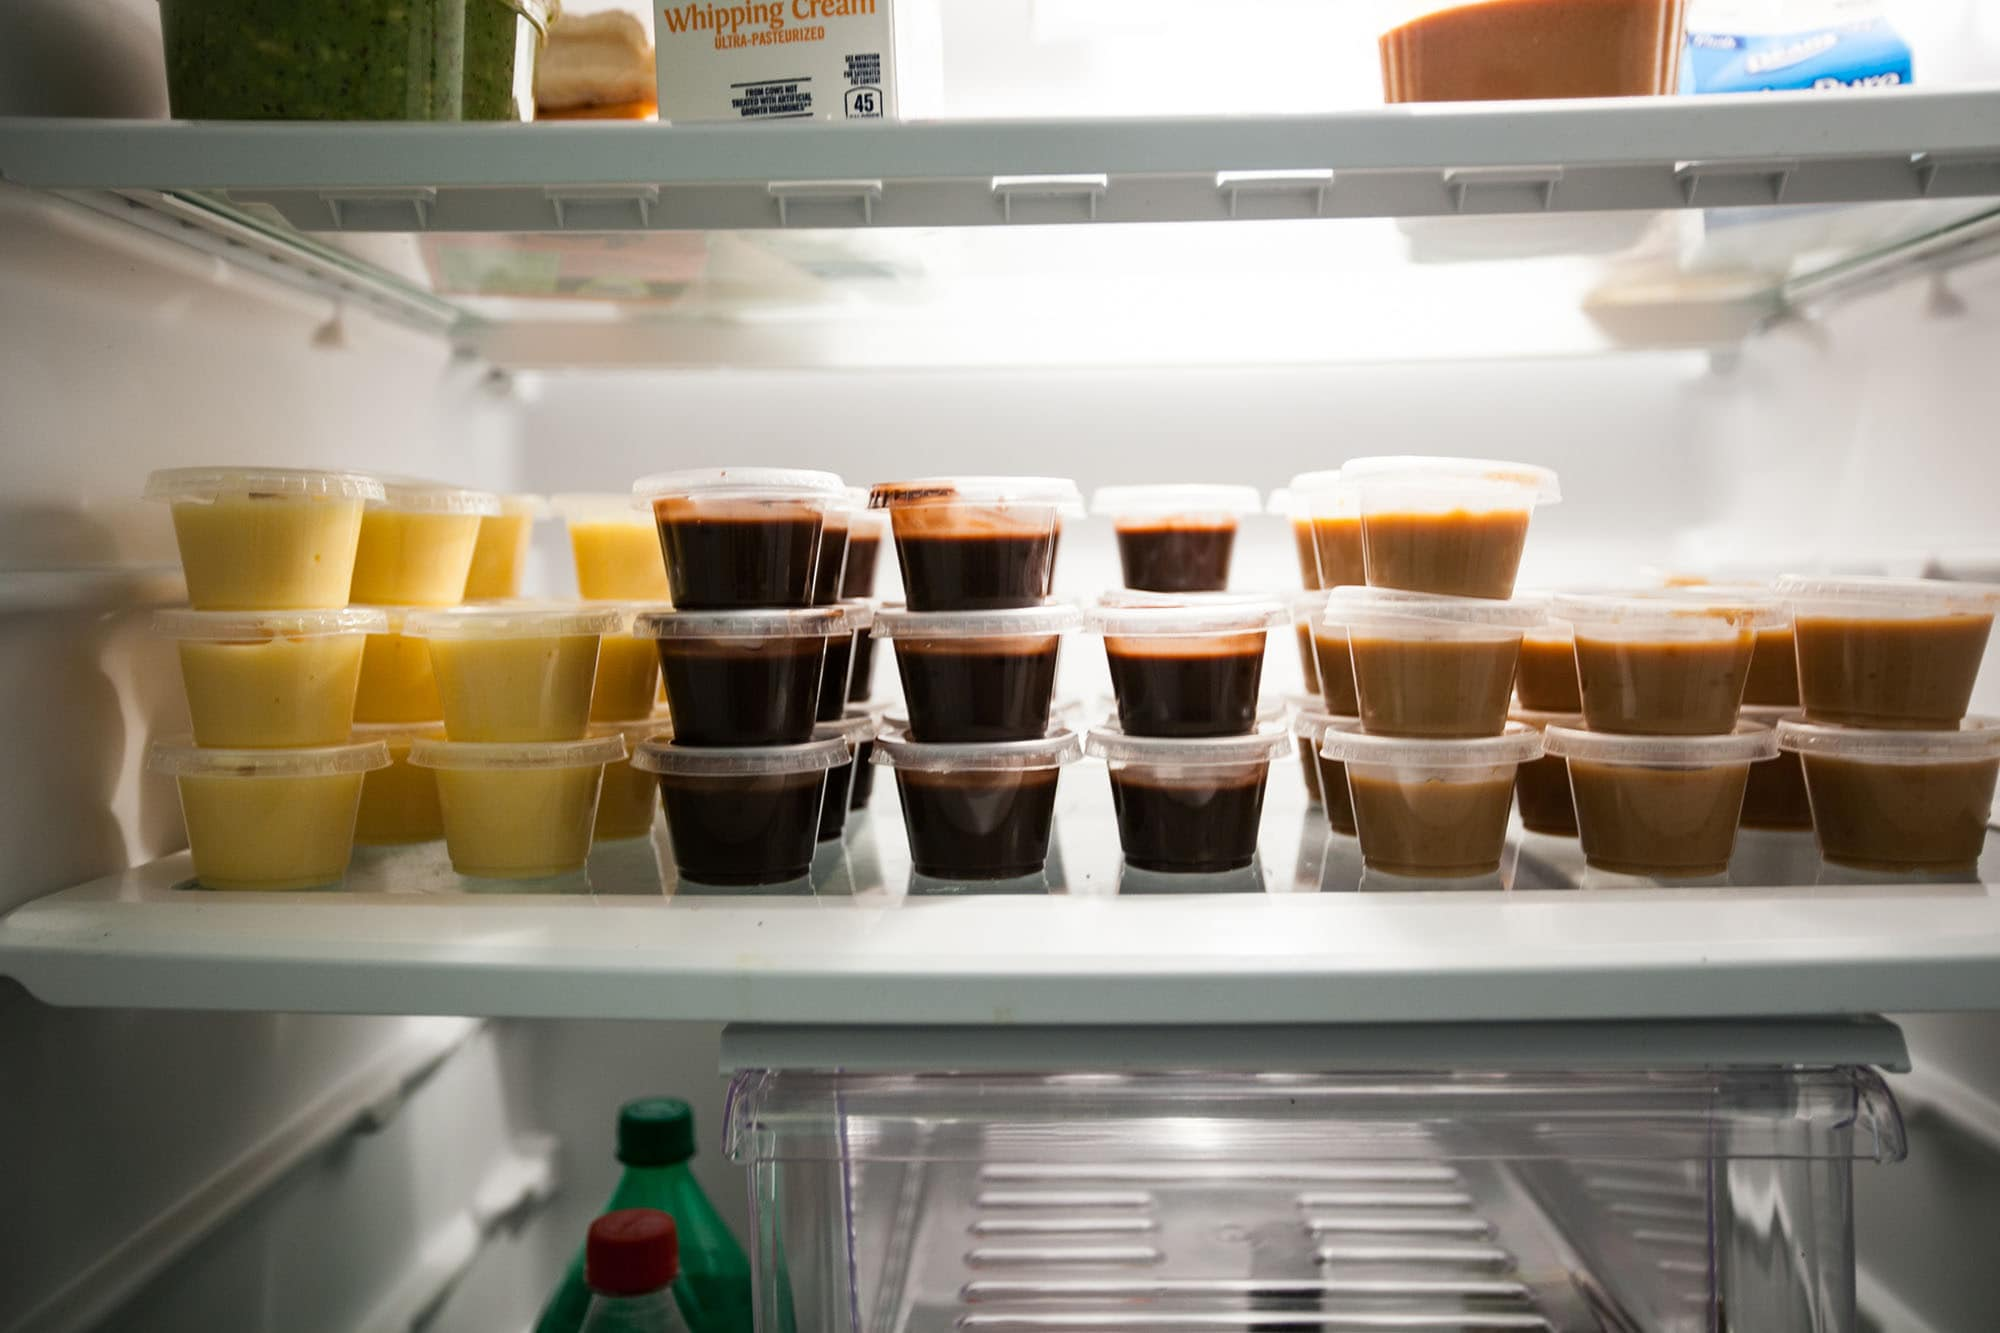 Alcoholic pudding shot recipes. Horchata, Mudslide, and Buttery Nipple (Slippery Nipple) pudding shots in my fridge.